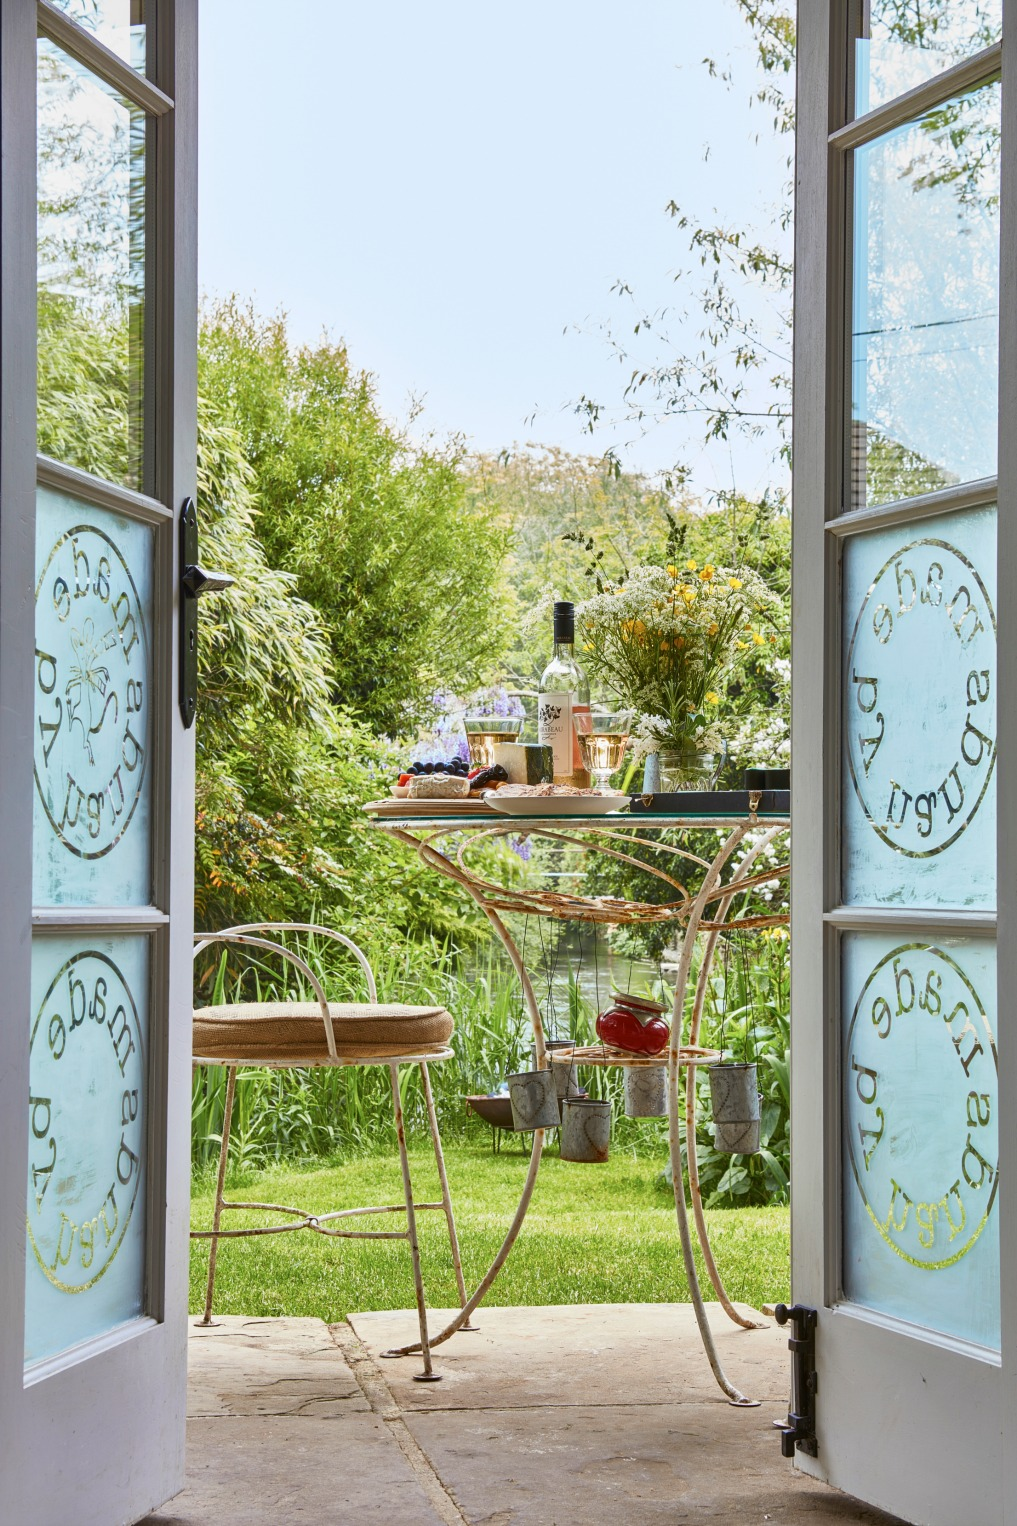 Etched doors spill out onto a beautiful patio kellyelko.com